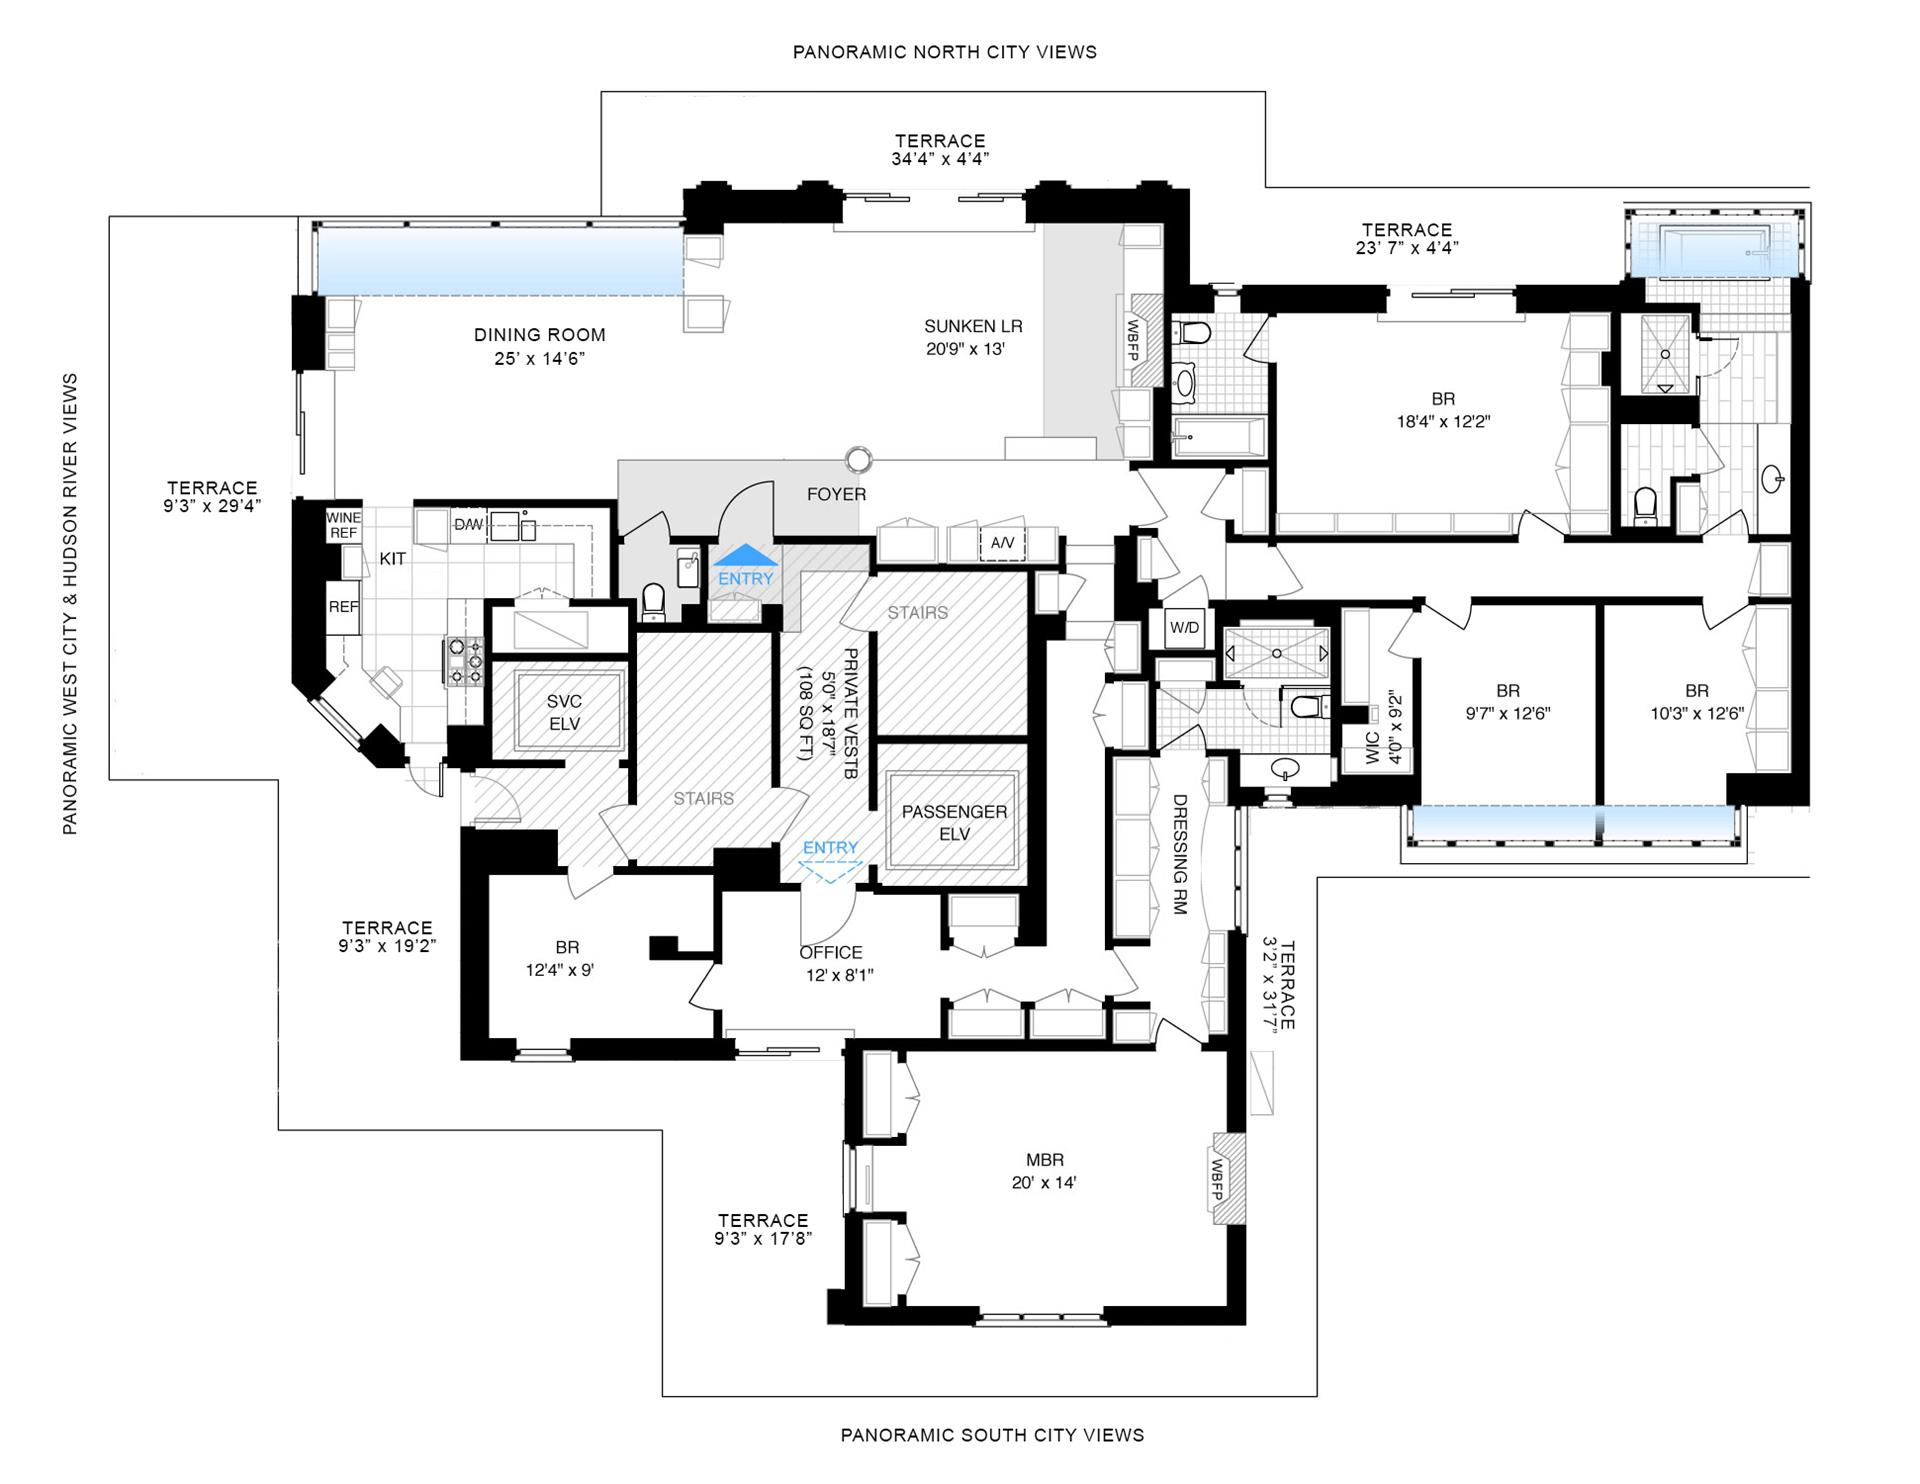 Floor plan of 200 West 86th Street, PHLM - Upper West Side, New York